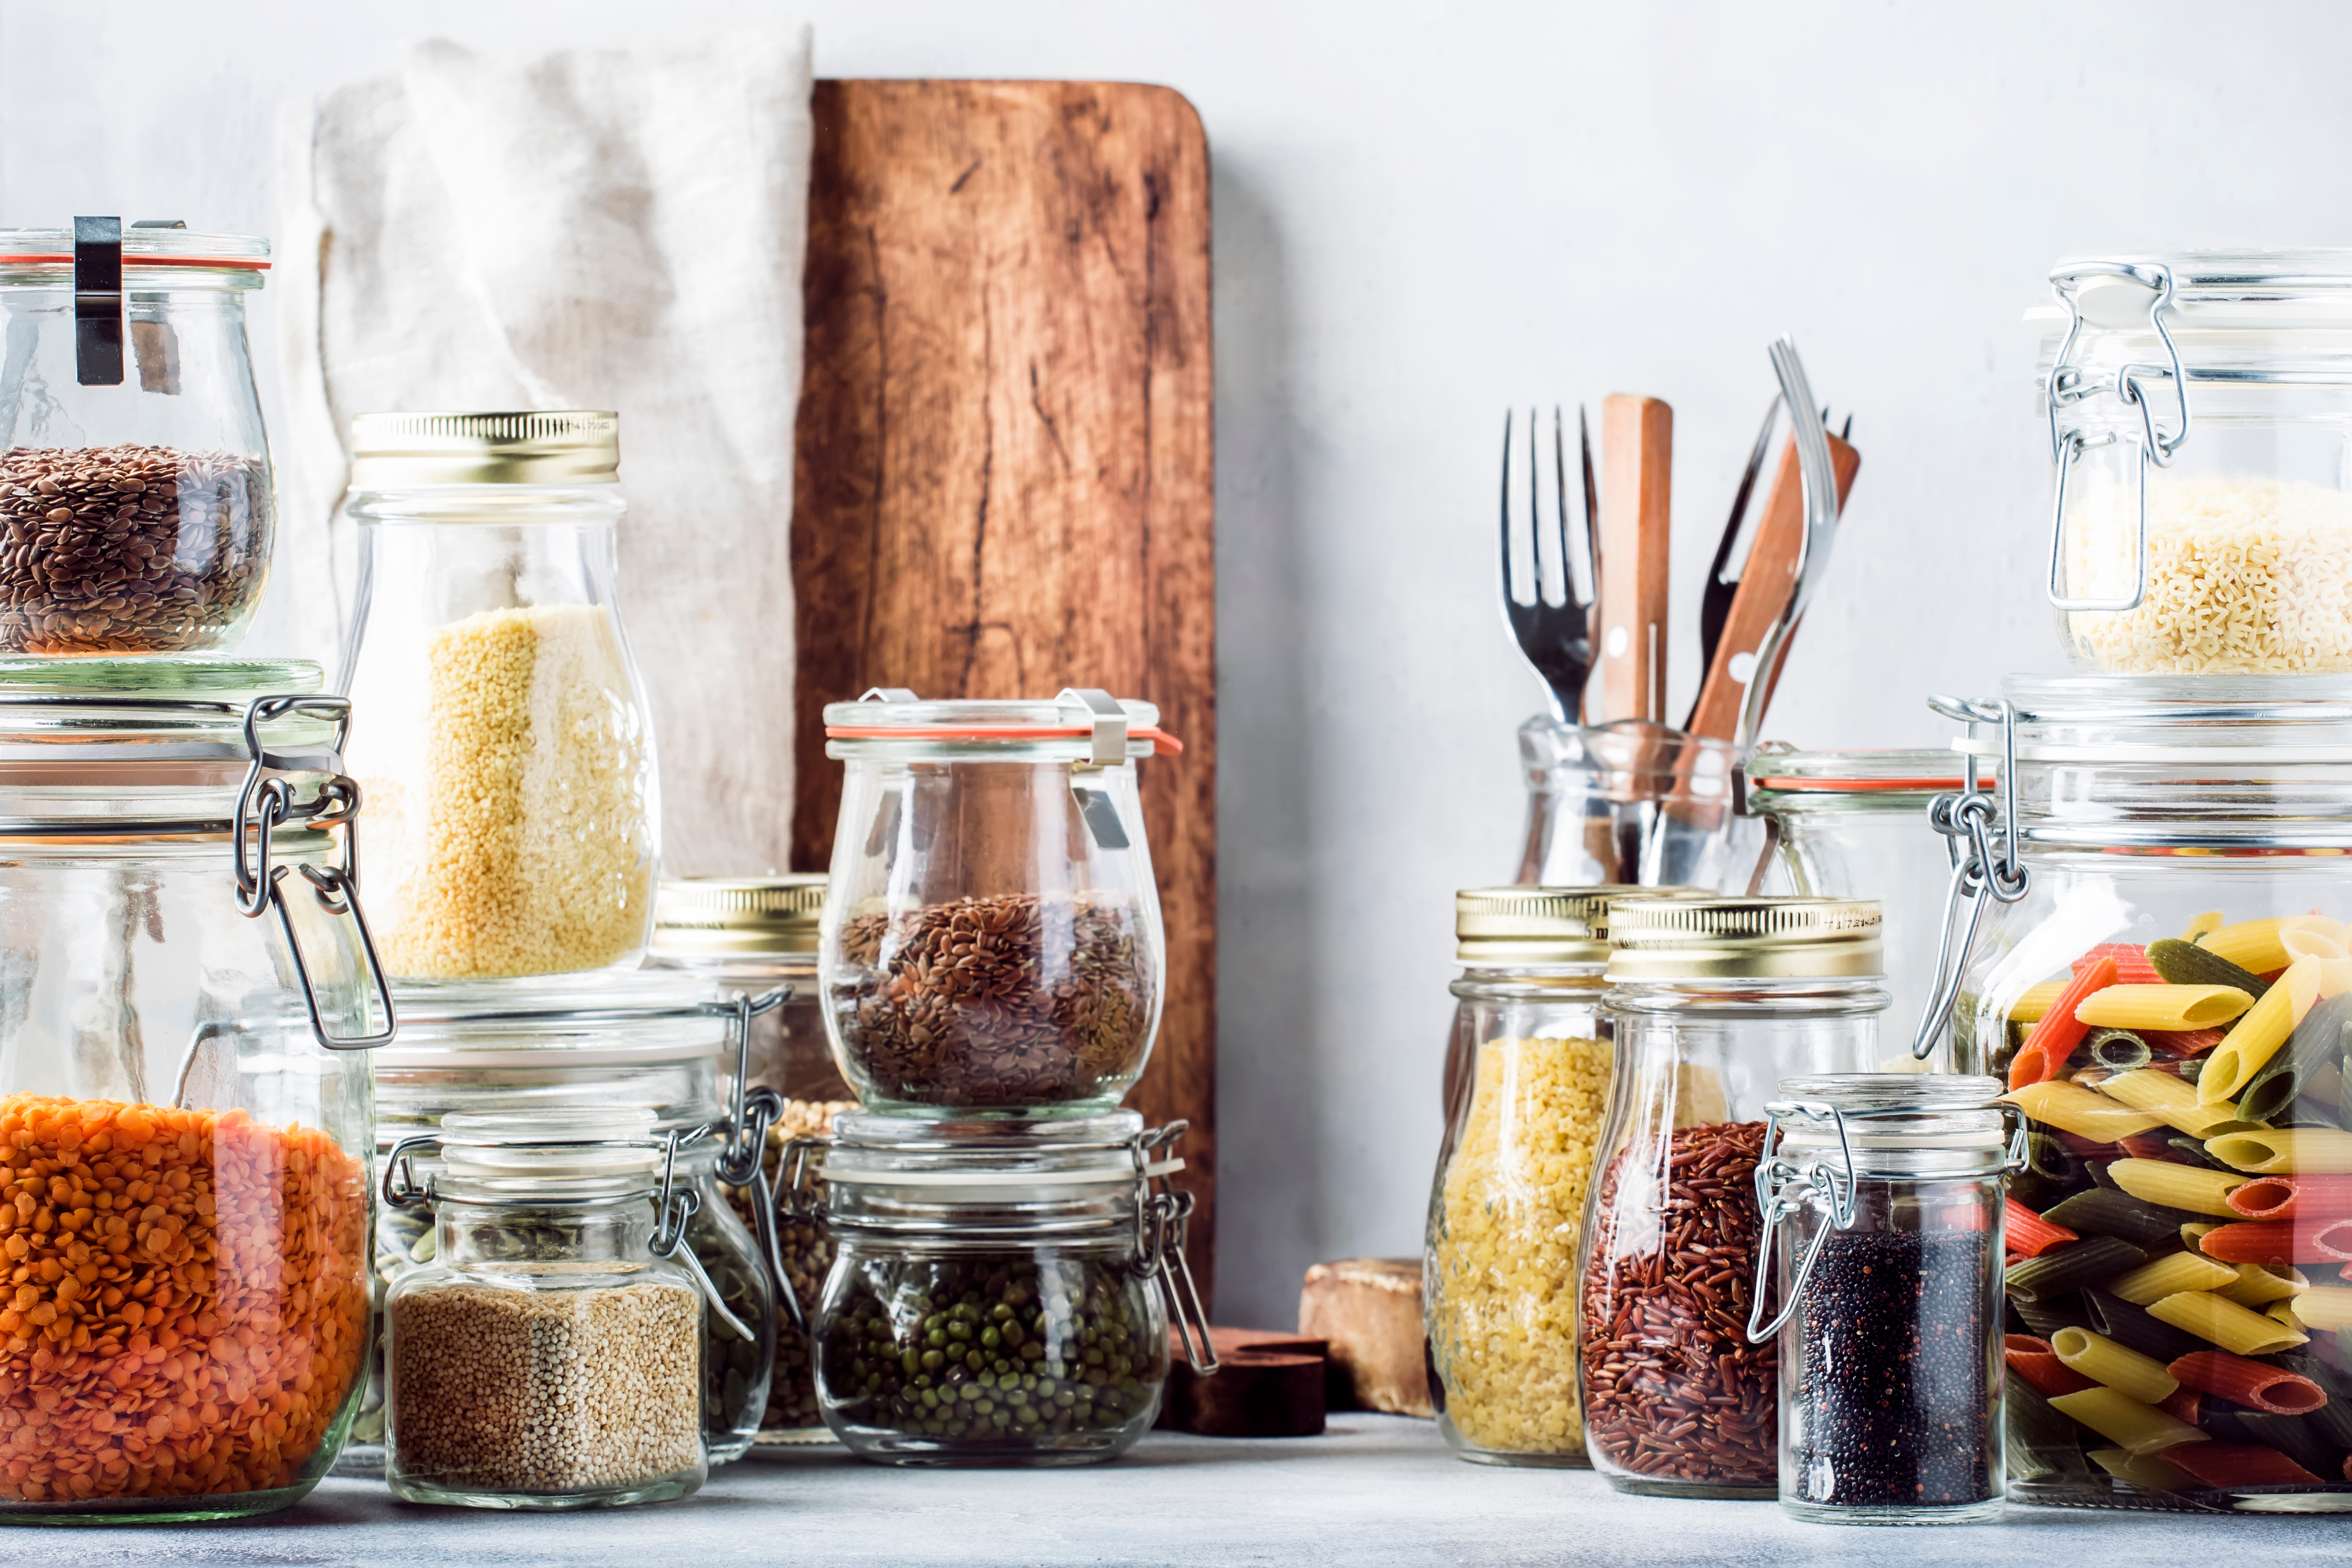 A pantry stocked with essentials and utensils